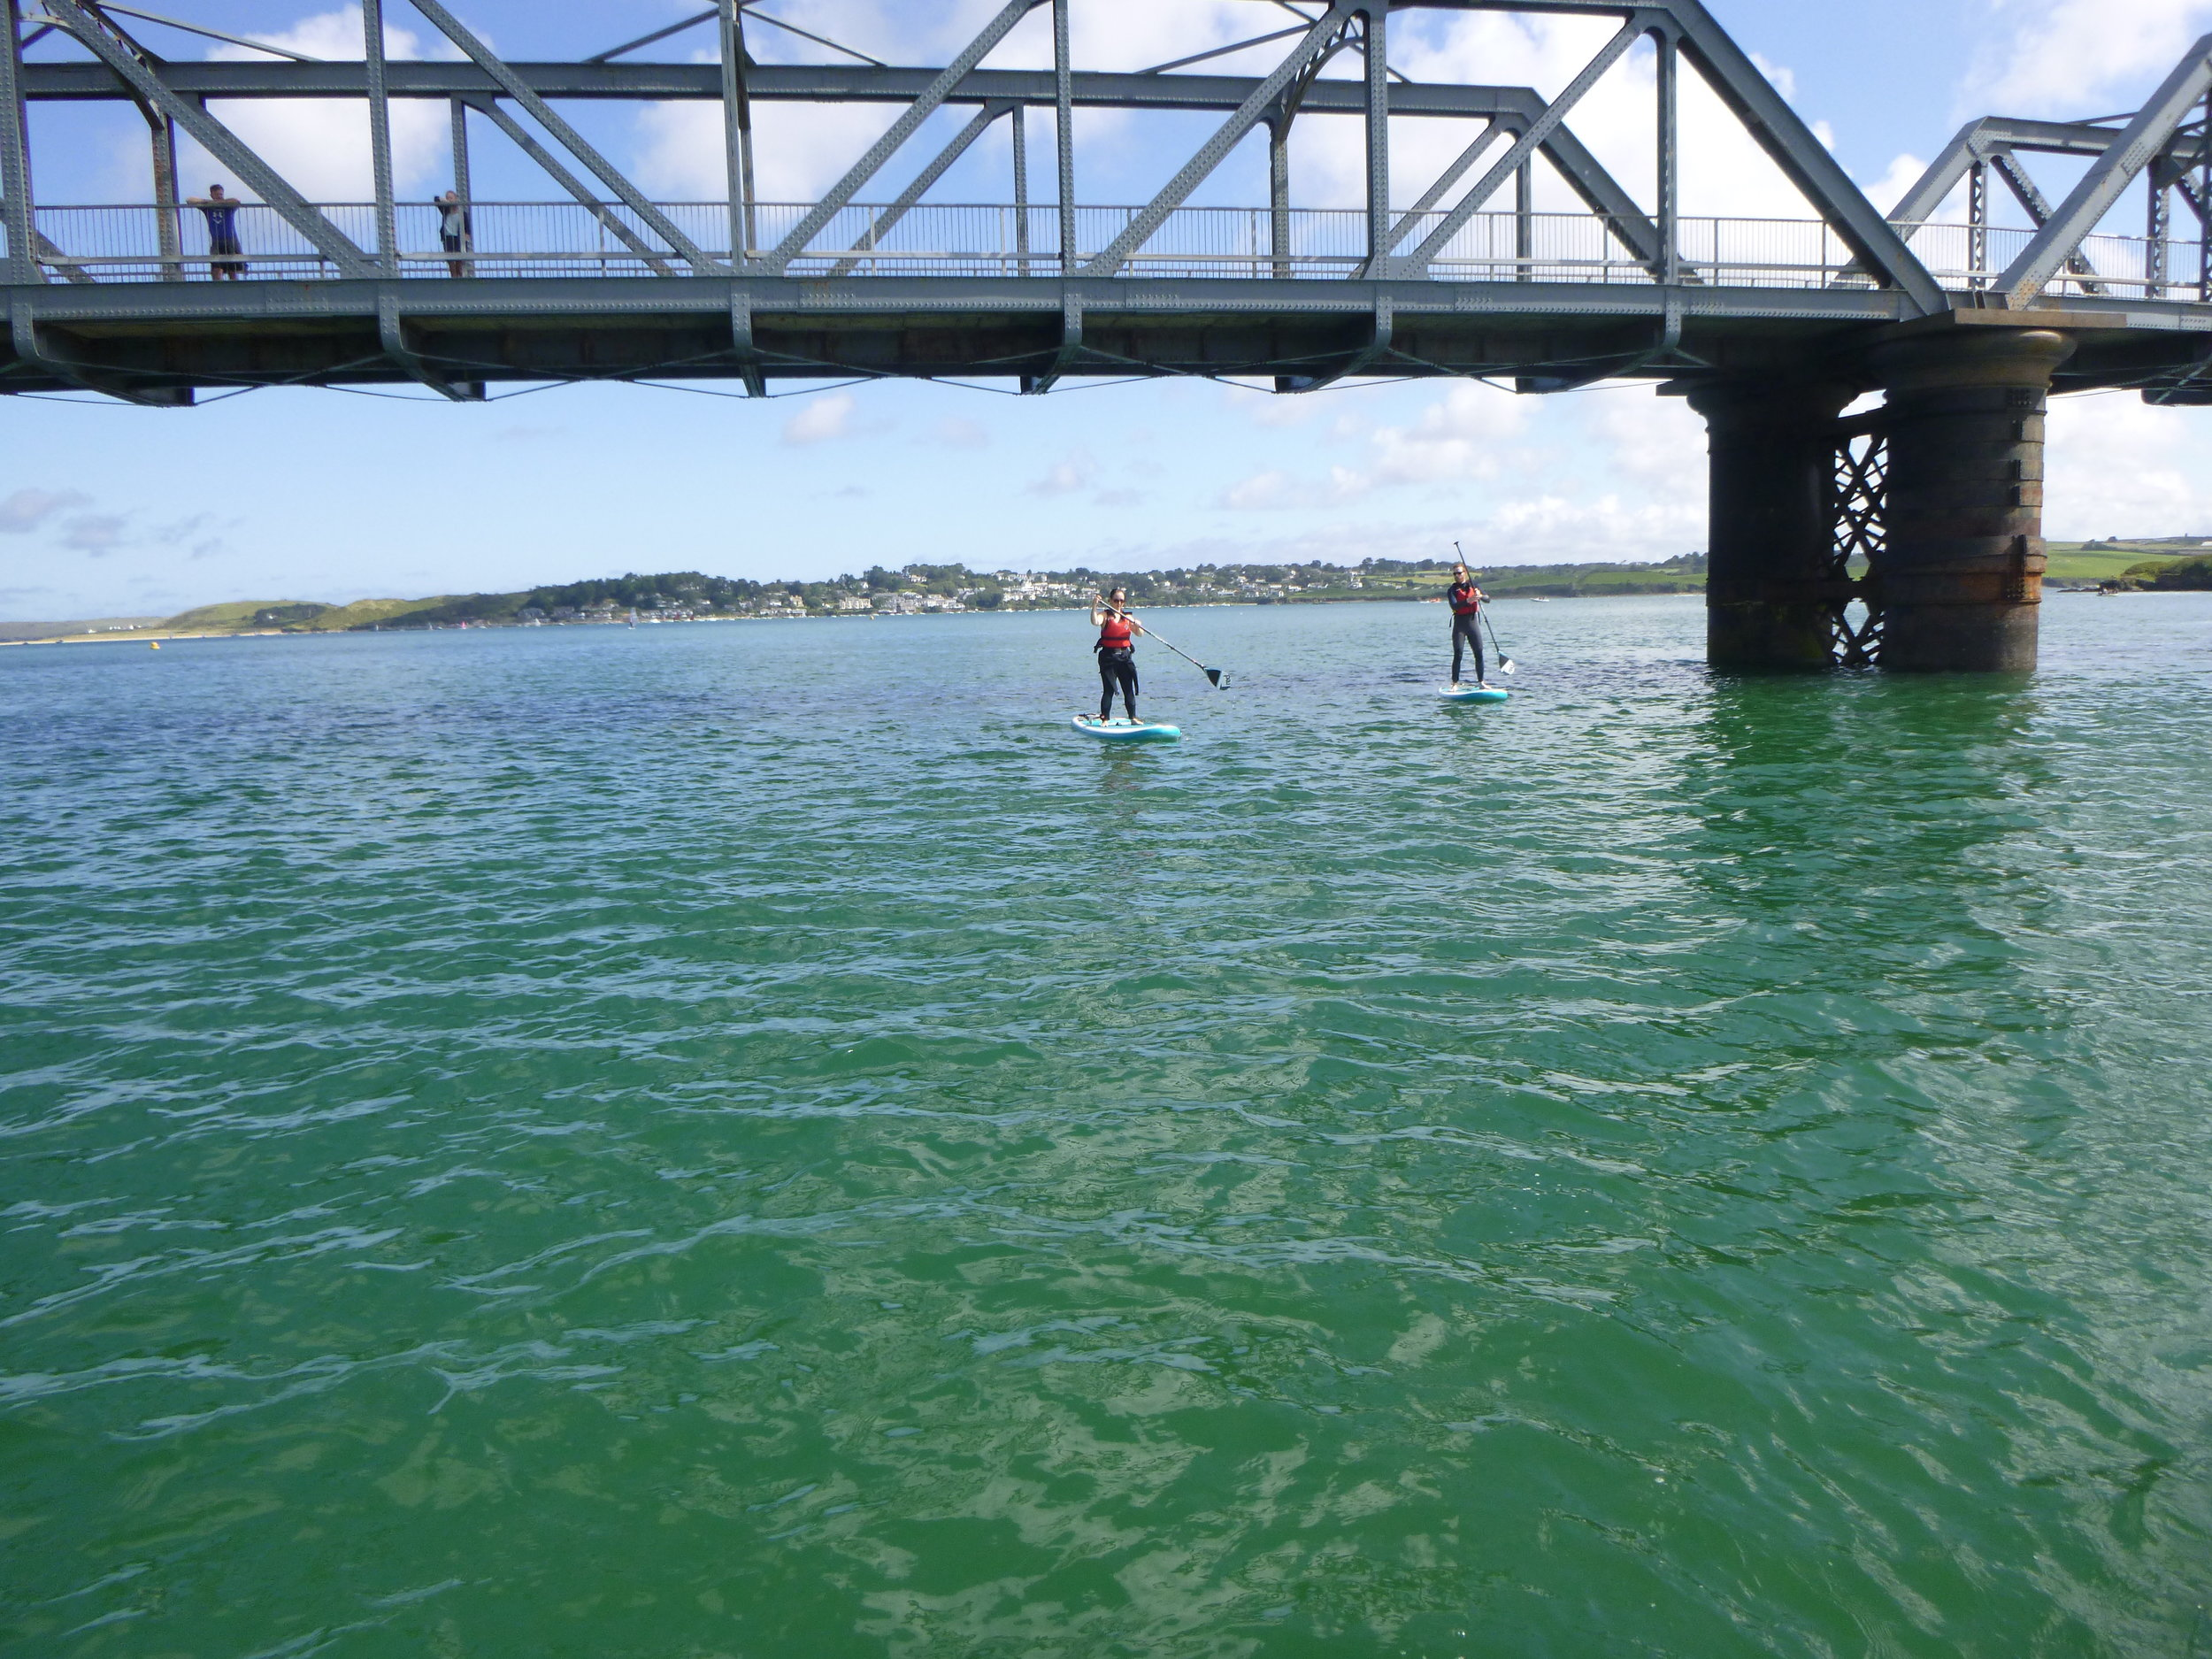 Leaving the Camel Estuary and Padstow, passing under the Camel Trail into Little Petherick Creek. A perfect location in a high tide for stand up paddleboarding.